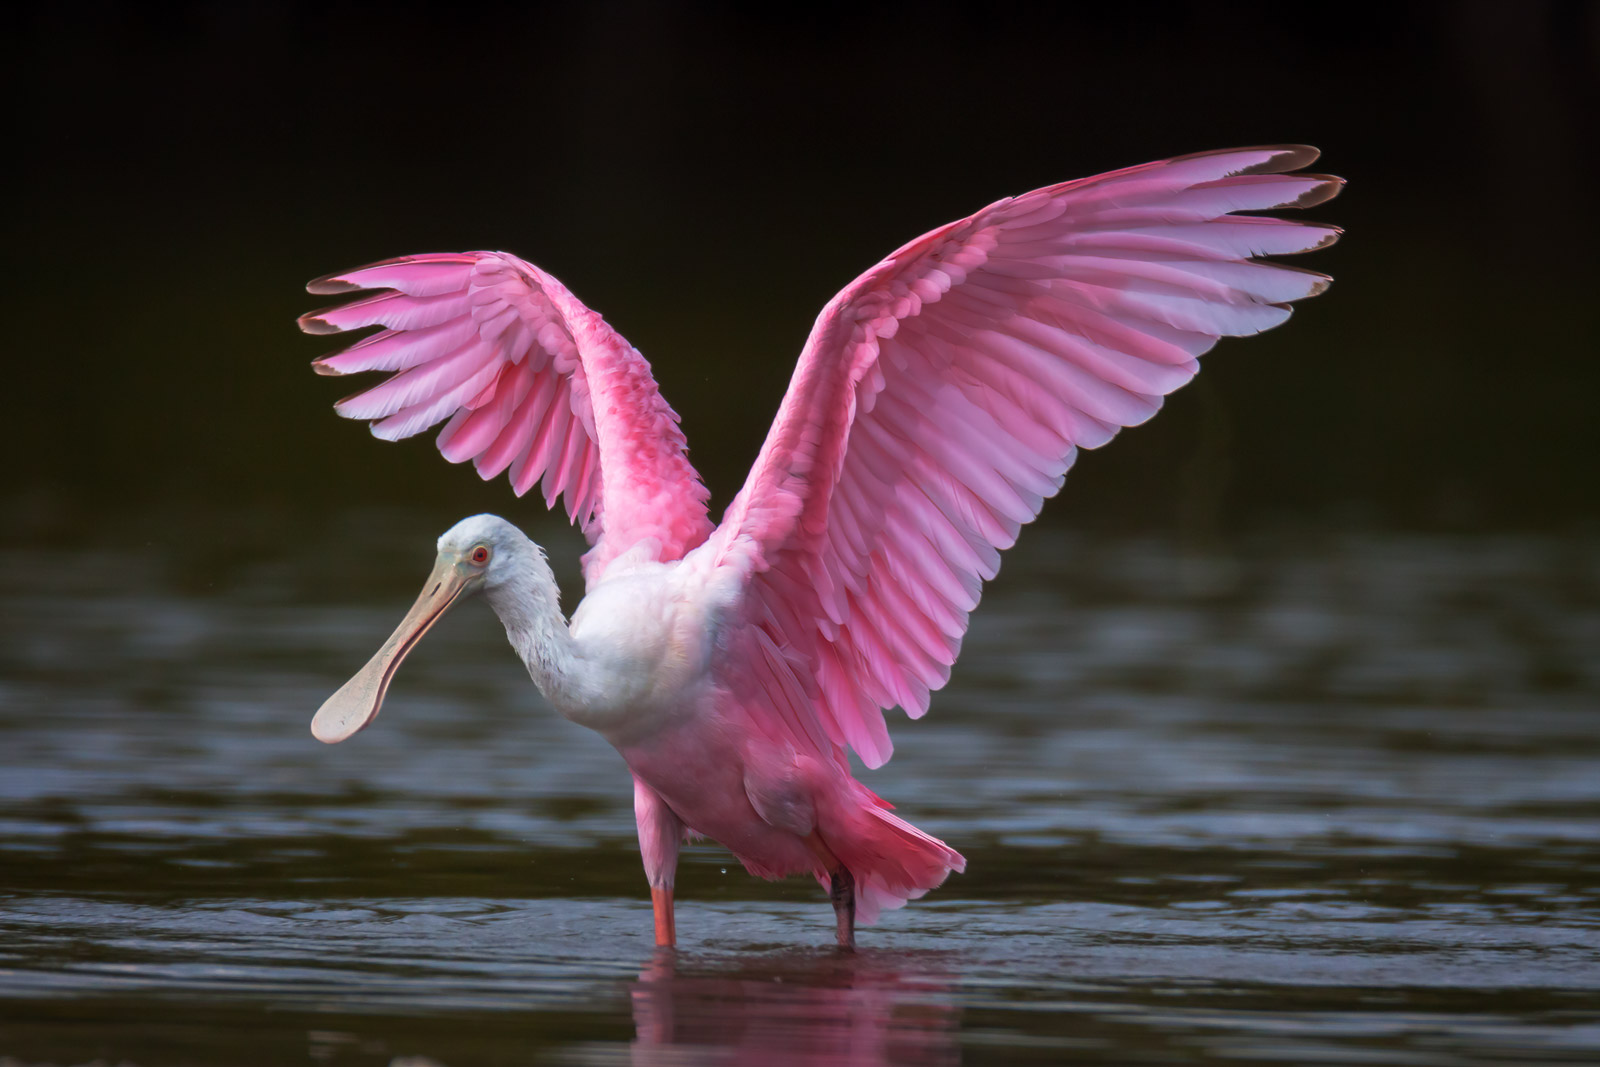 Roseate Spoonbill Fine Art Photography A Limited Edition photograph of a Roseate Spoonbill in the water with its wings raised...